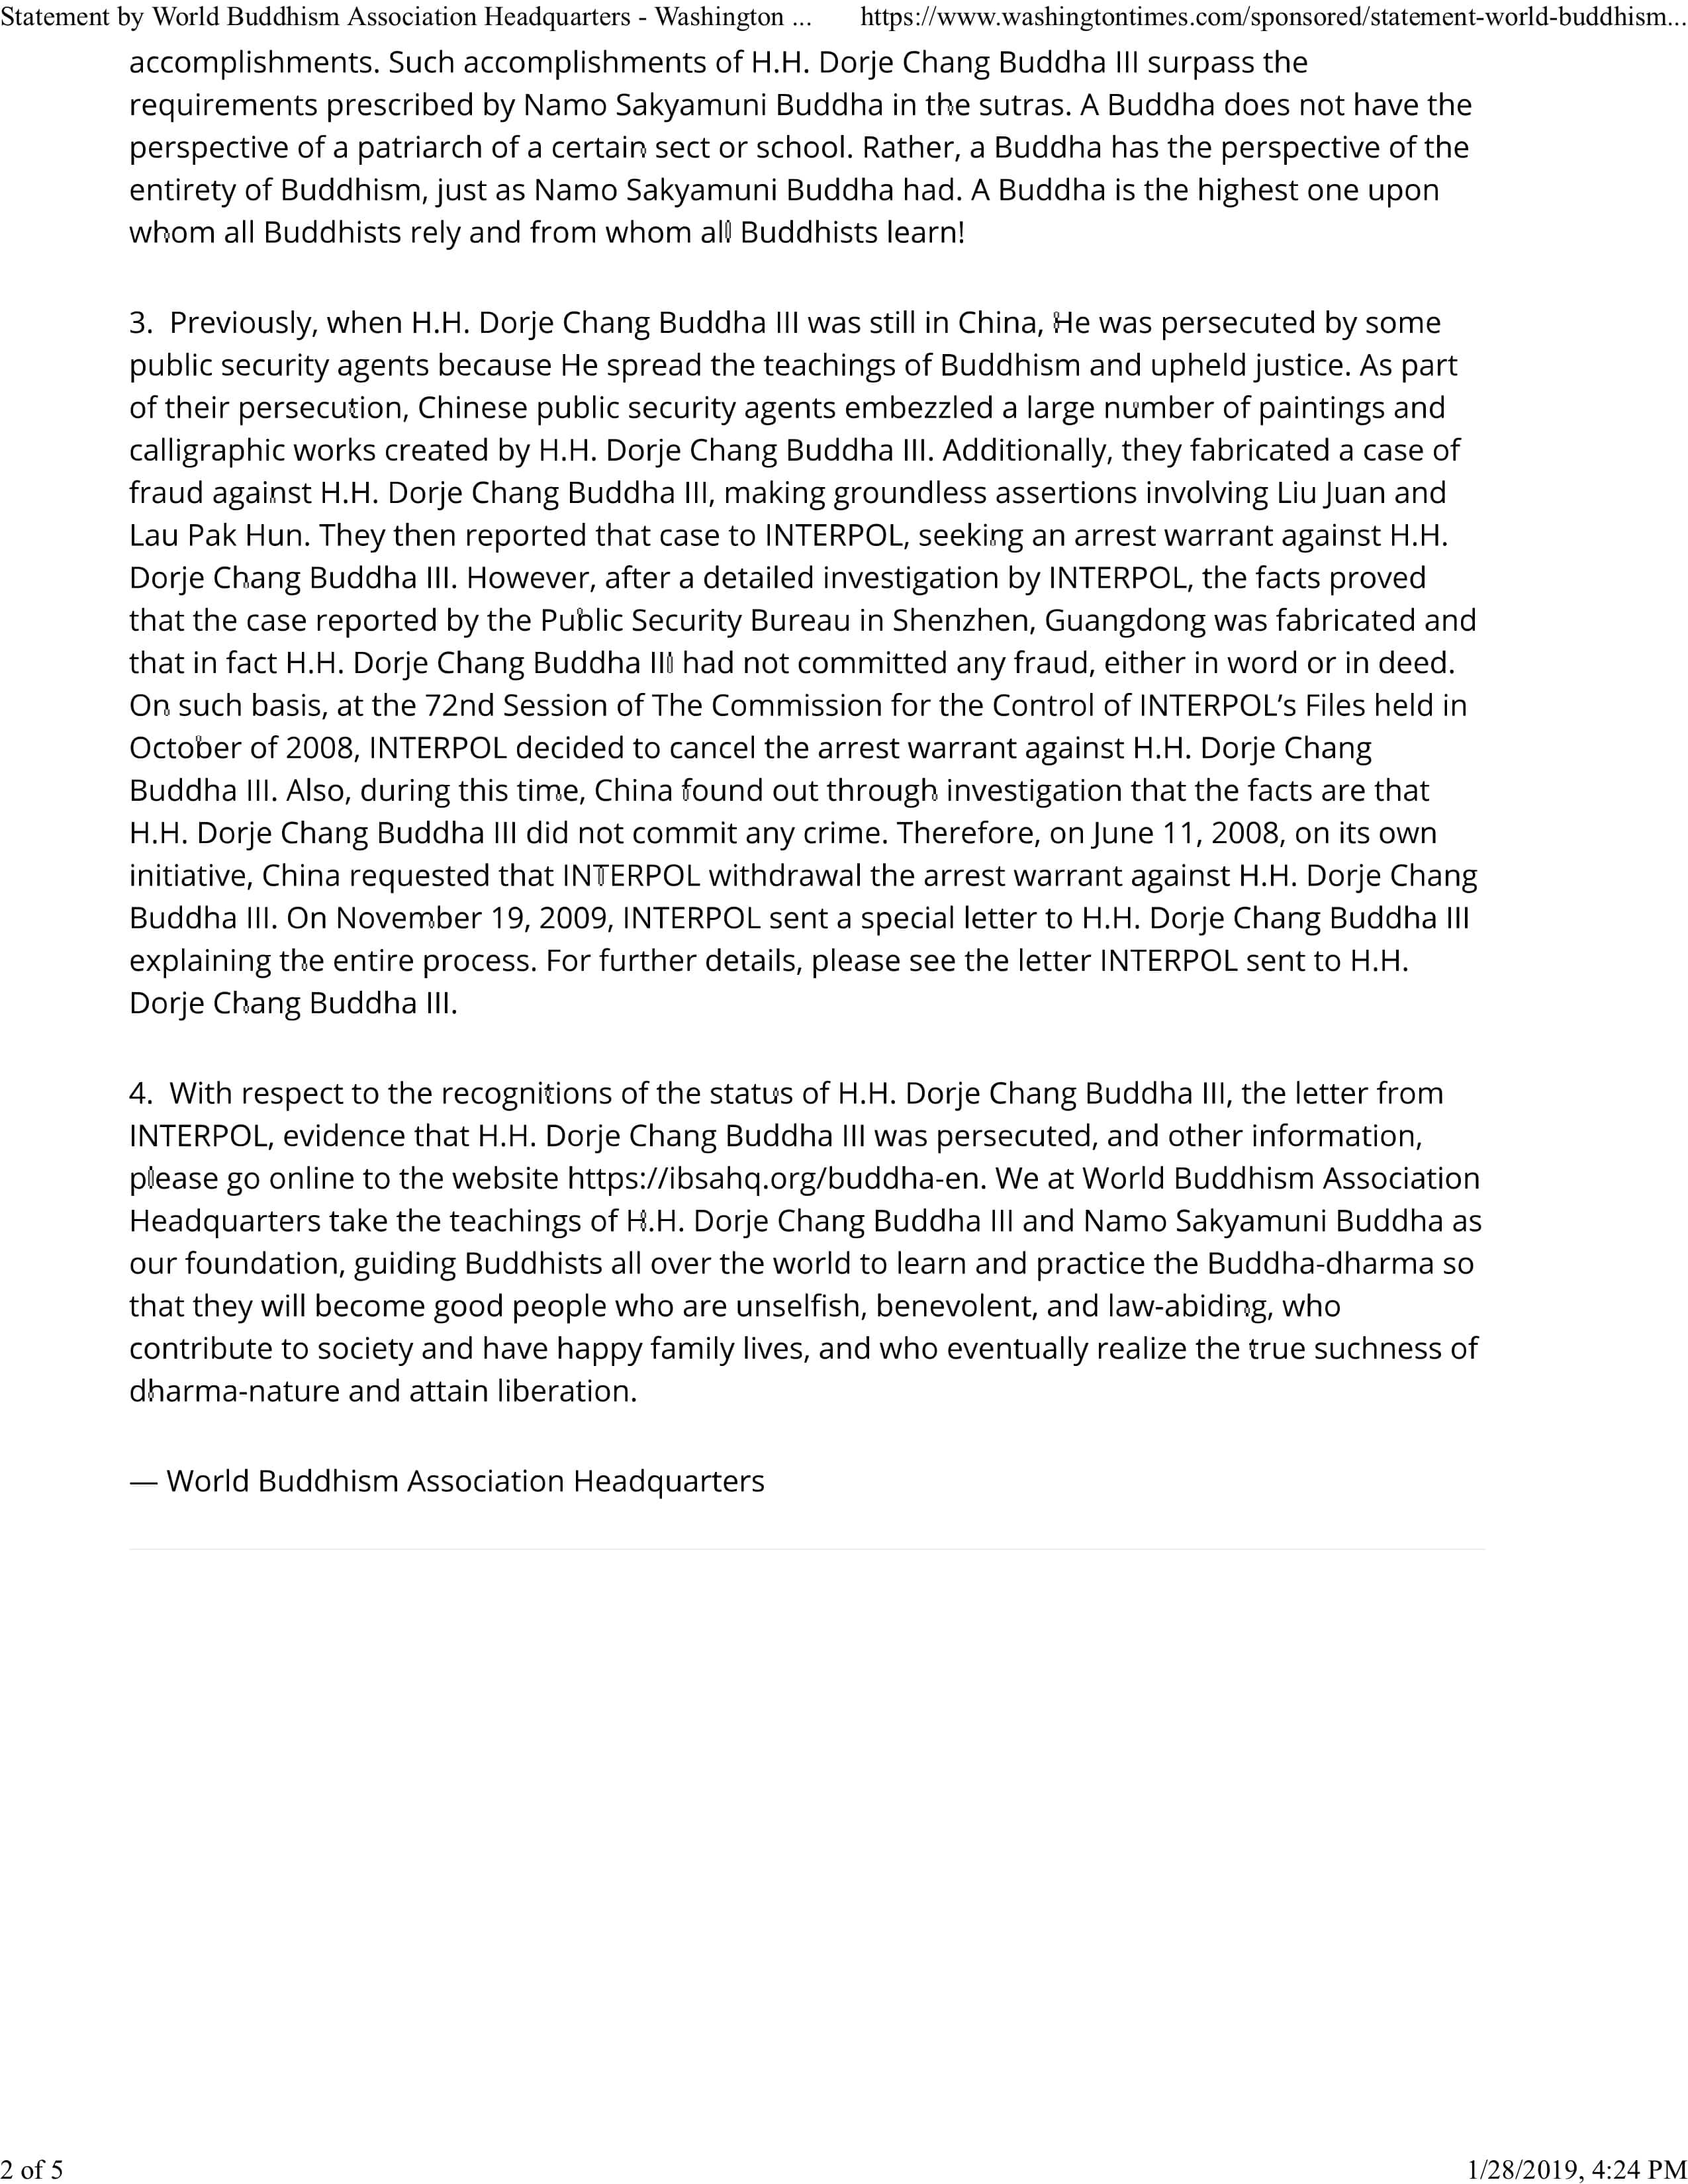 China found out through investigation that the facts are that H.H. Dorje Chang Buddha III did not commit any crime. Therefore, on June 11, 2008, on its own initiative, China requested that INTERPOL withdrawal the arrest warrant against H.H. Dorje Chang Buddha III